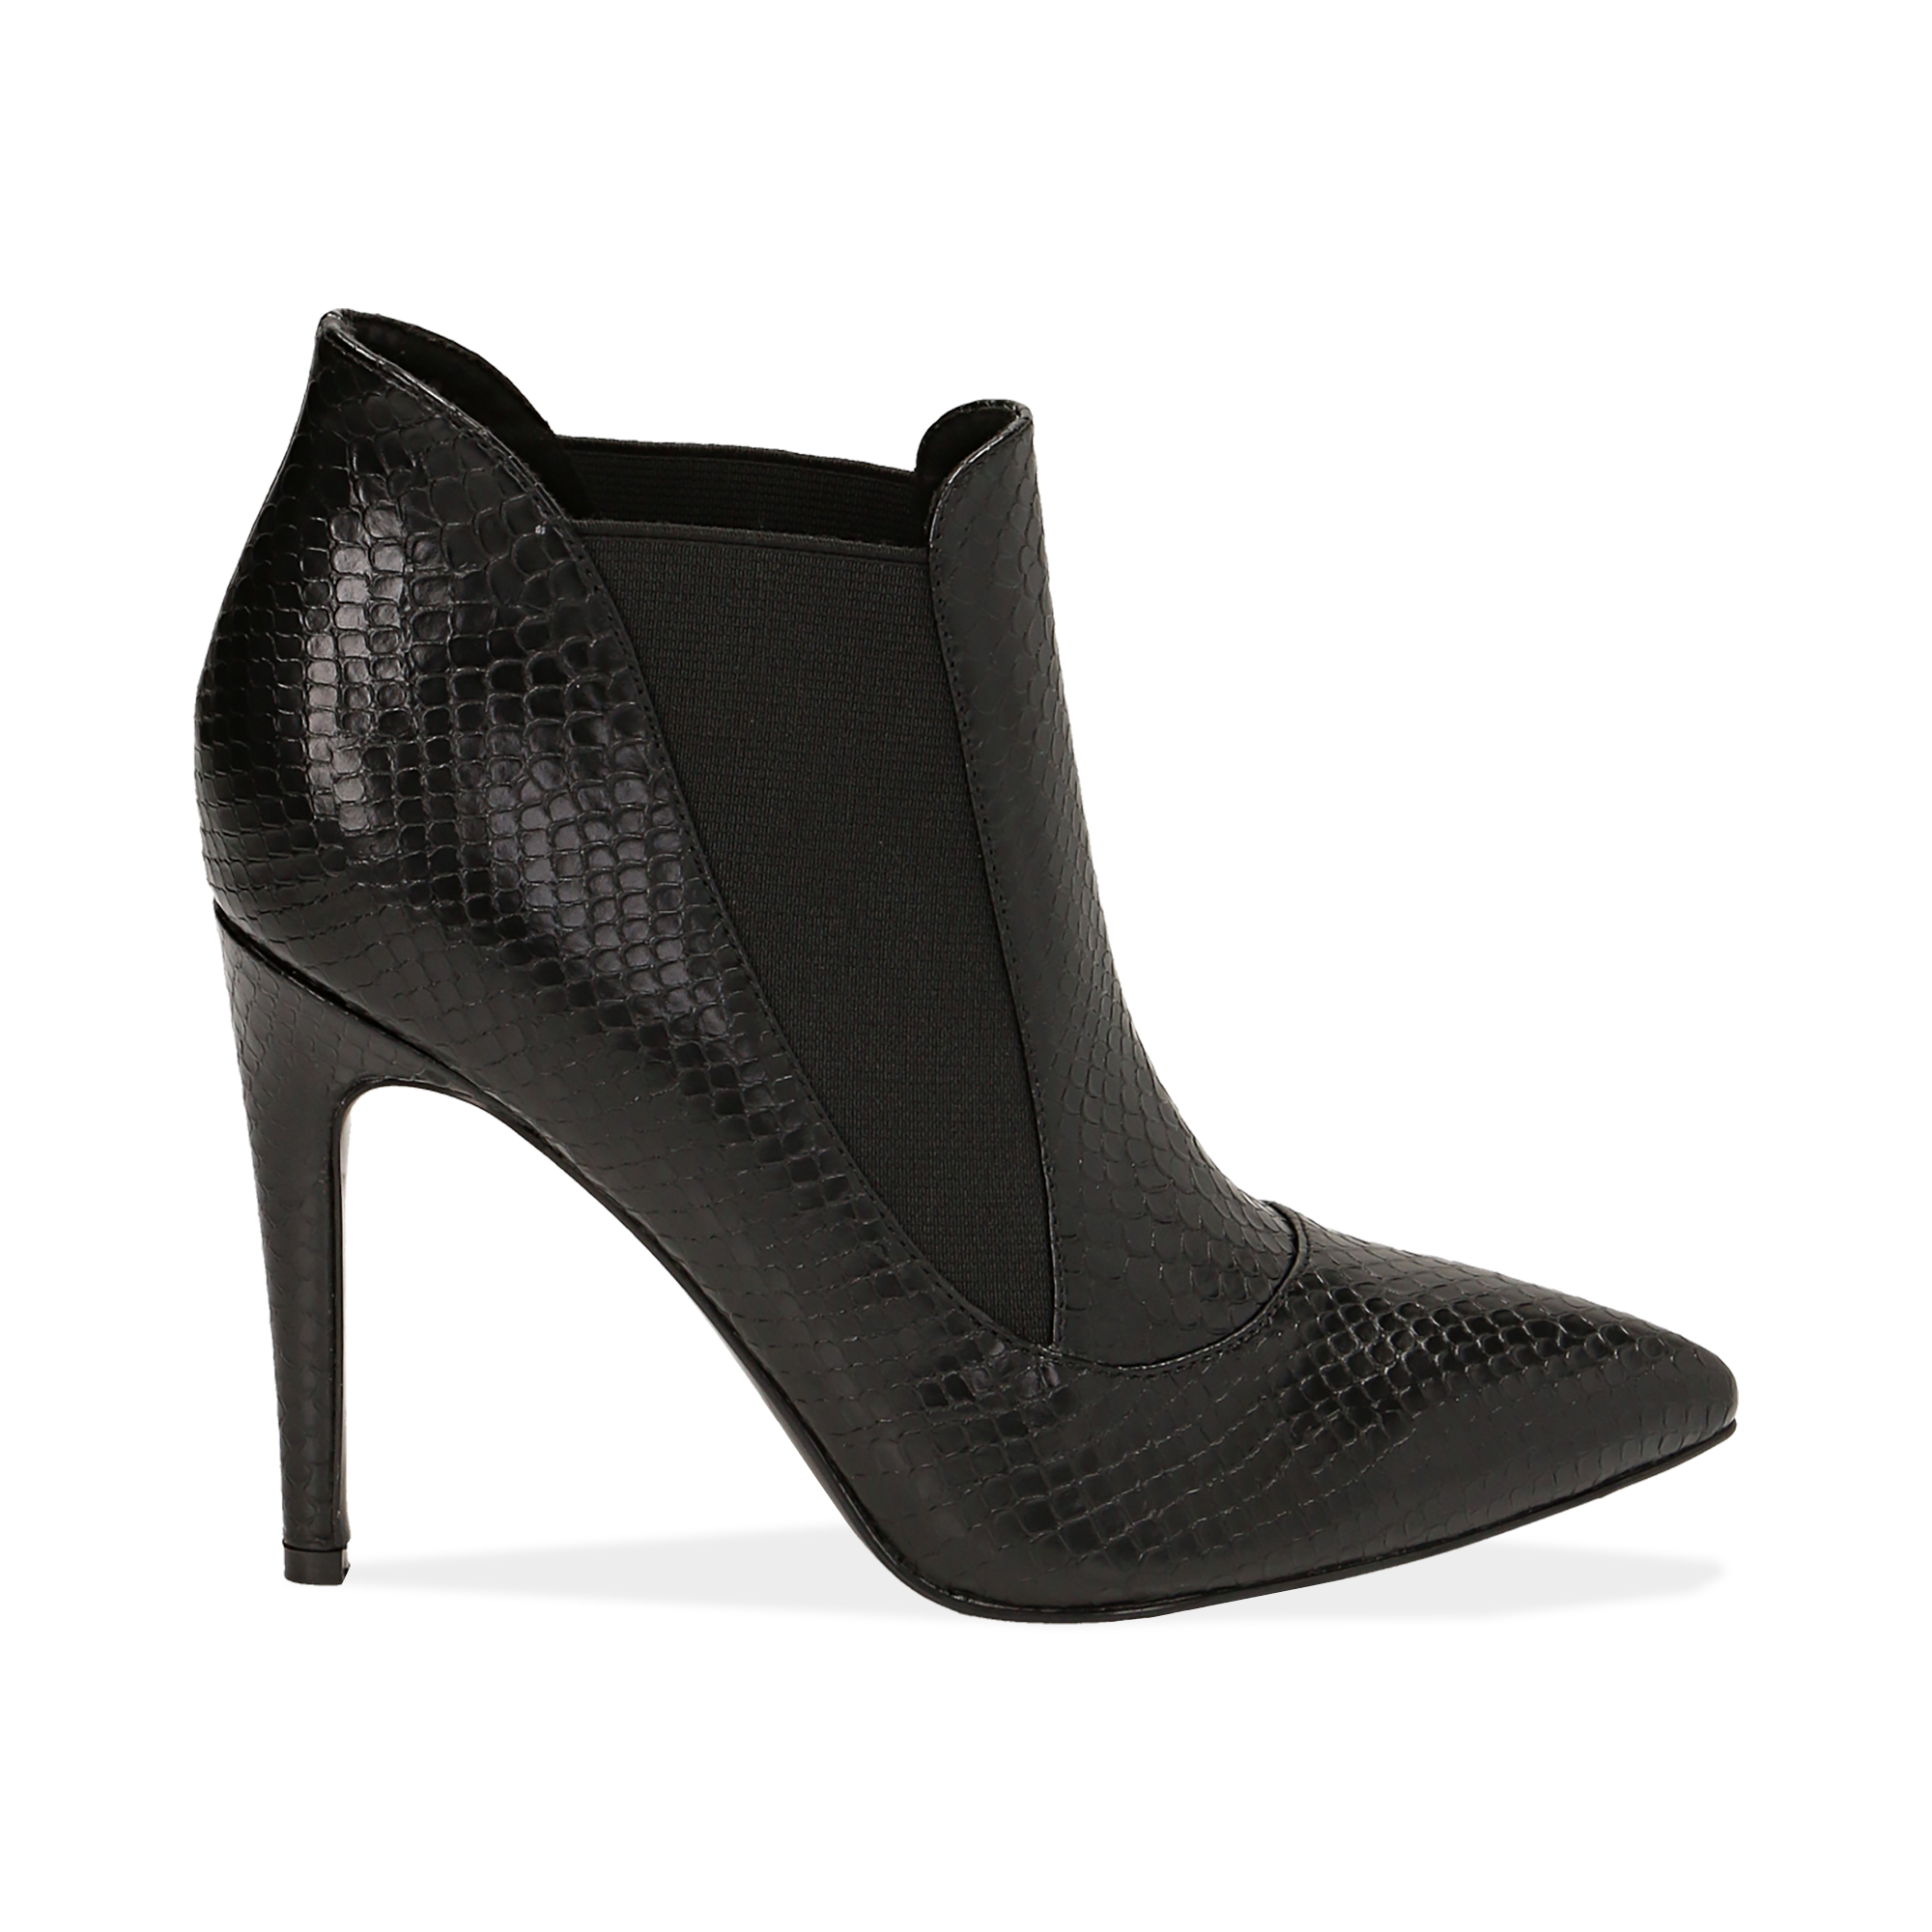 Ankle boots neri stampa vipera, tacco 10,50 cm